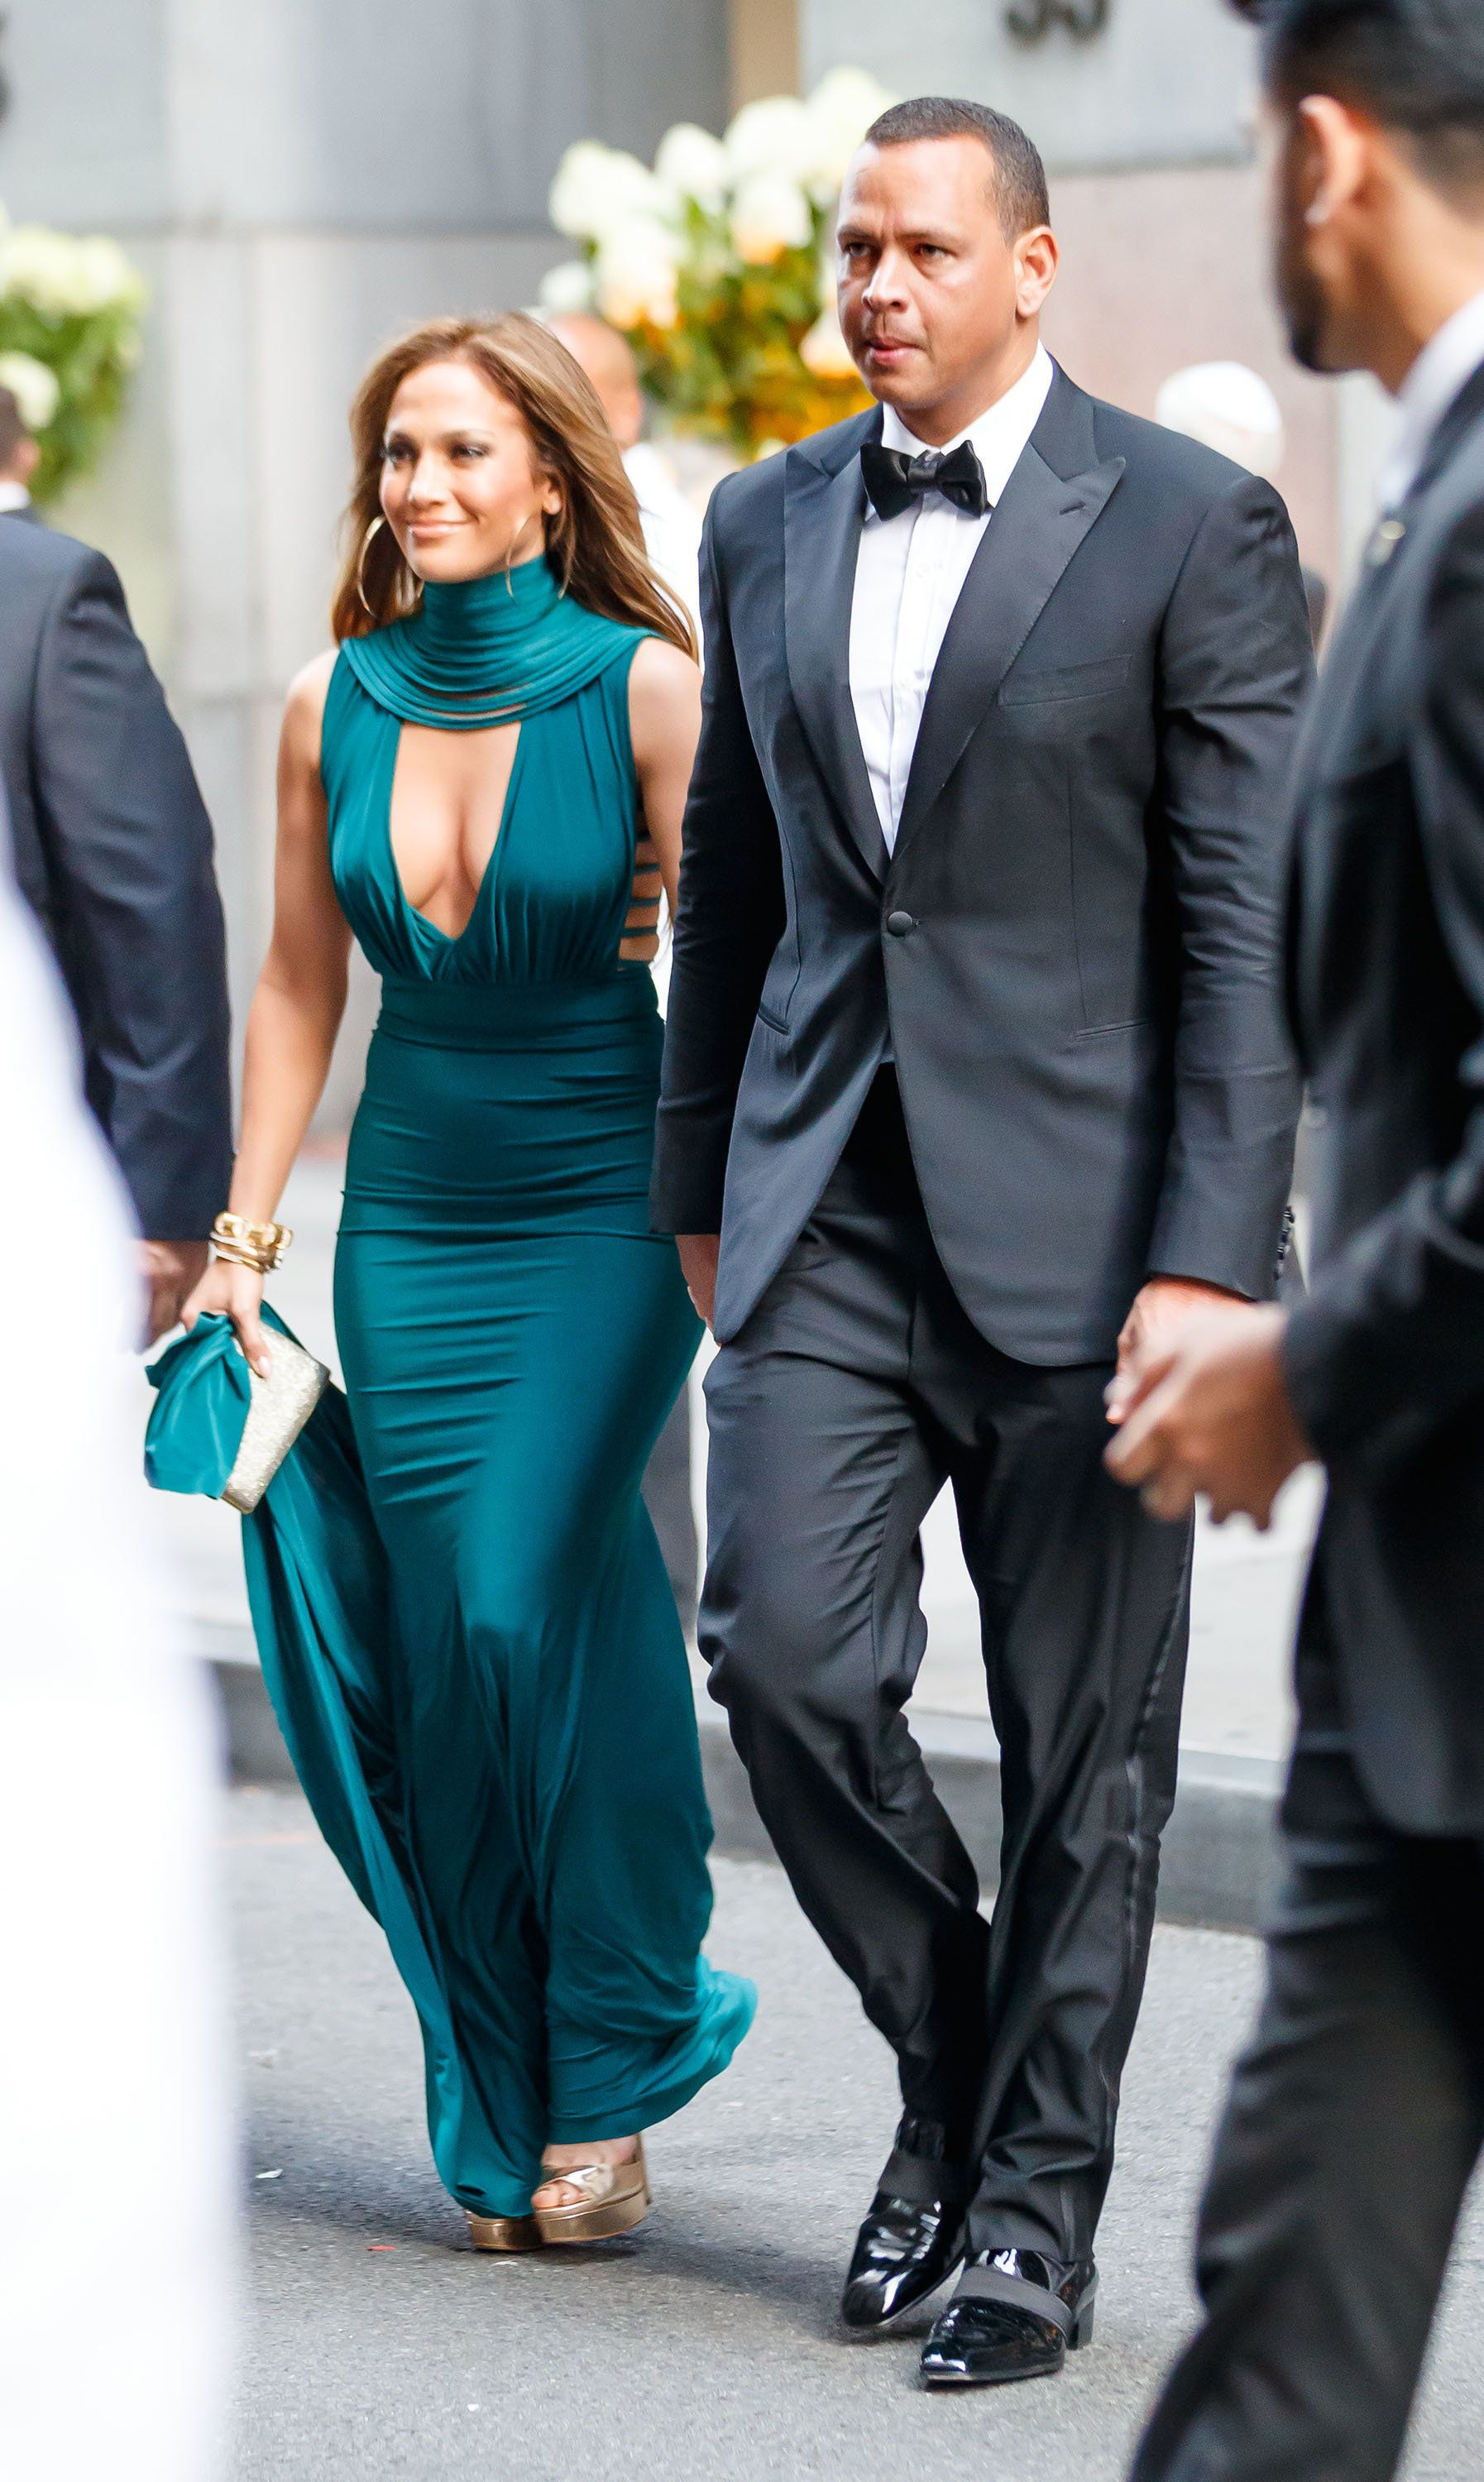 Jennifer Lopez and Alex Rodriquez at the wedding of Sophia Lasry and Alex Swieca in New York, NY.